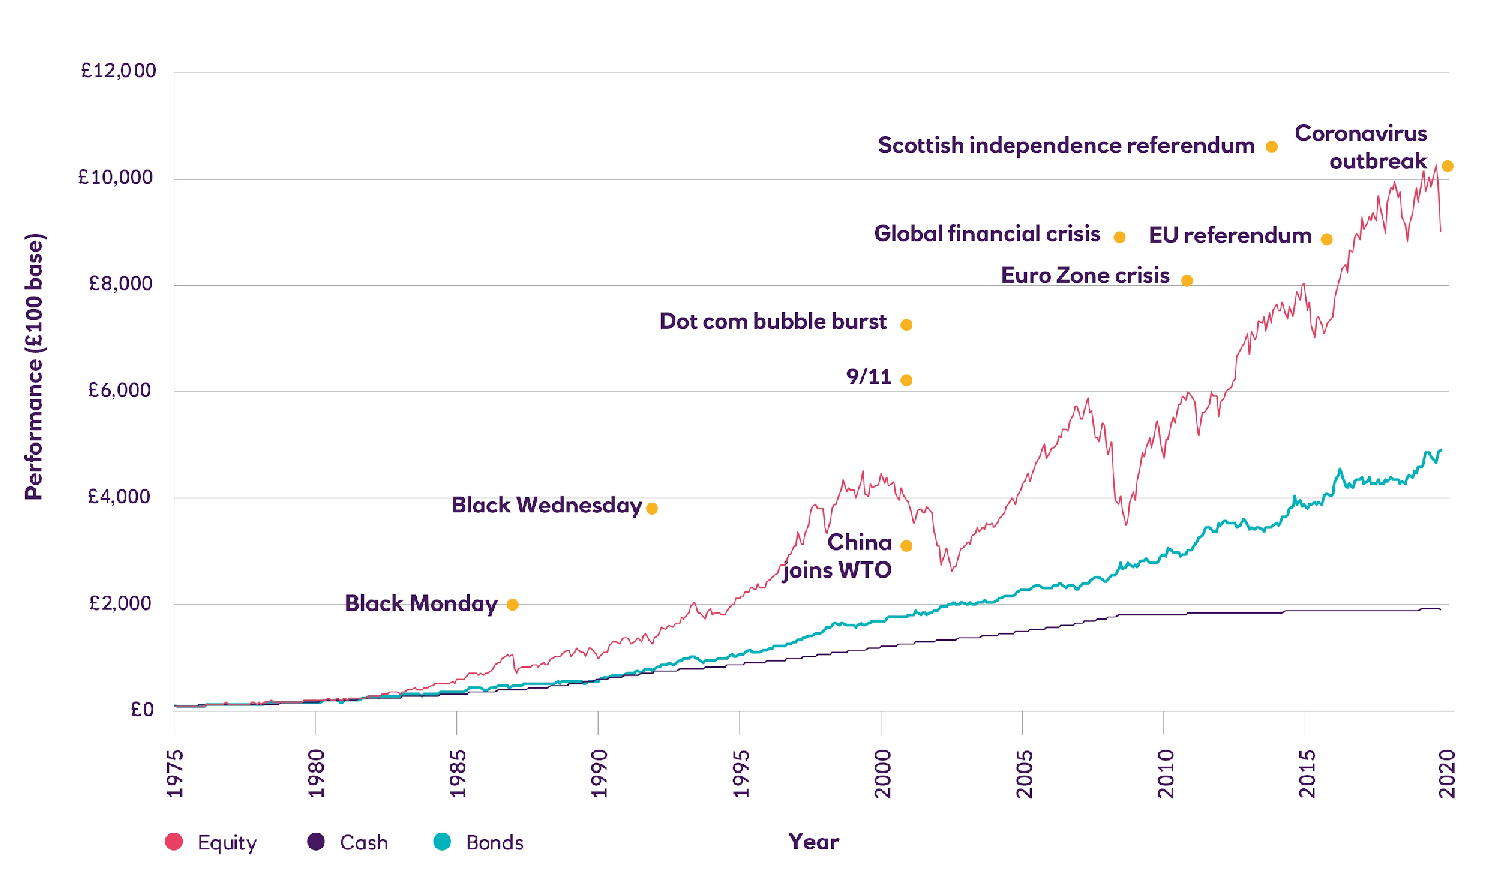 Chart showing the ups and downs of the UK share market over the long term between 1975 and 2020.